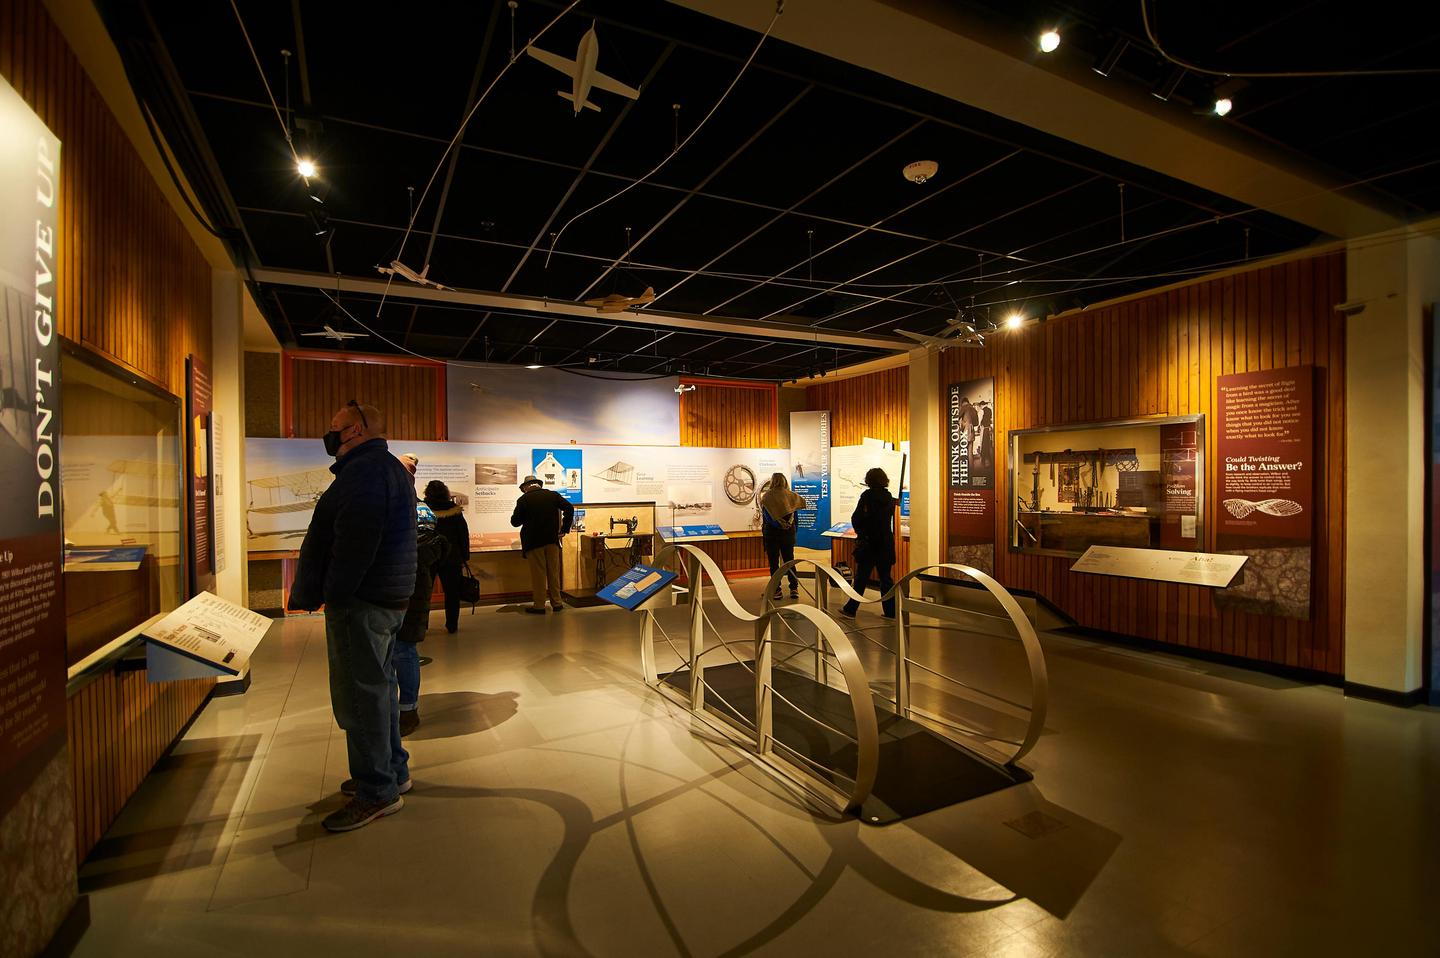 Museum ExhibitsThe Wright Brothers Museum helps explain the invention of powered flight